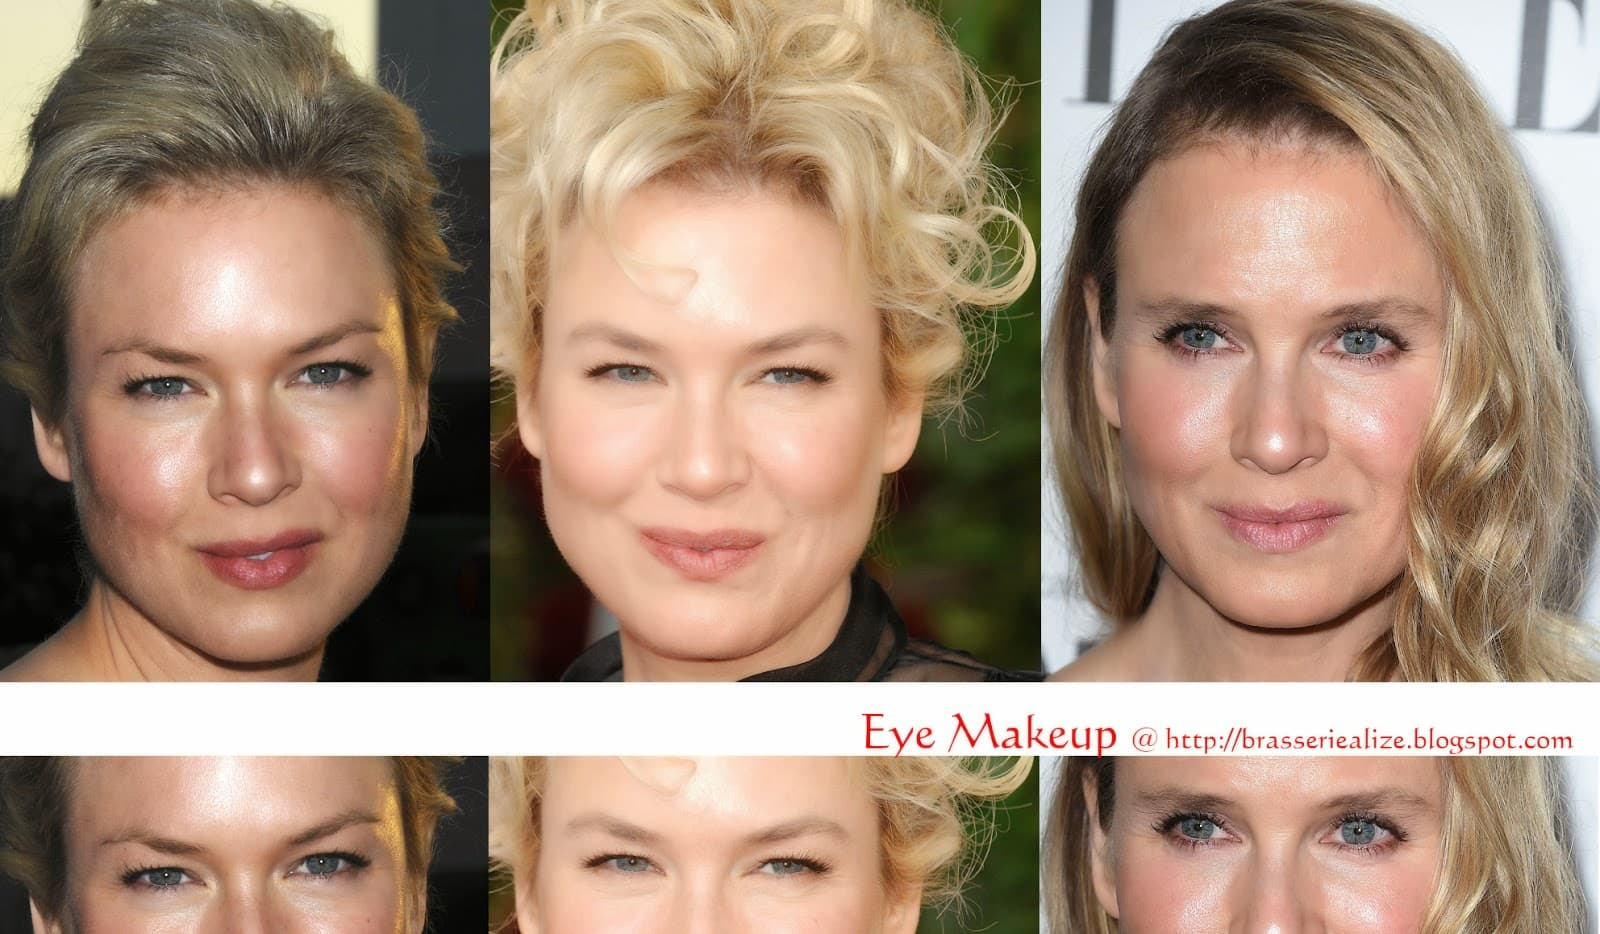 Bad Before And After Plastic Surgery Eyes 1